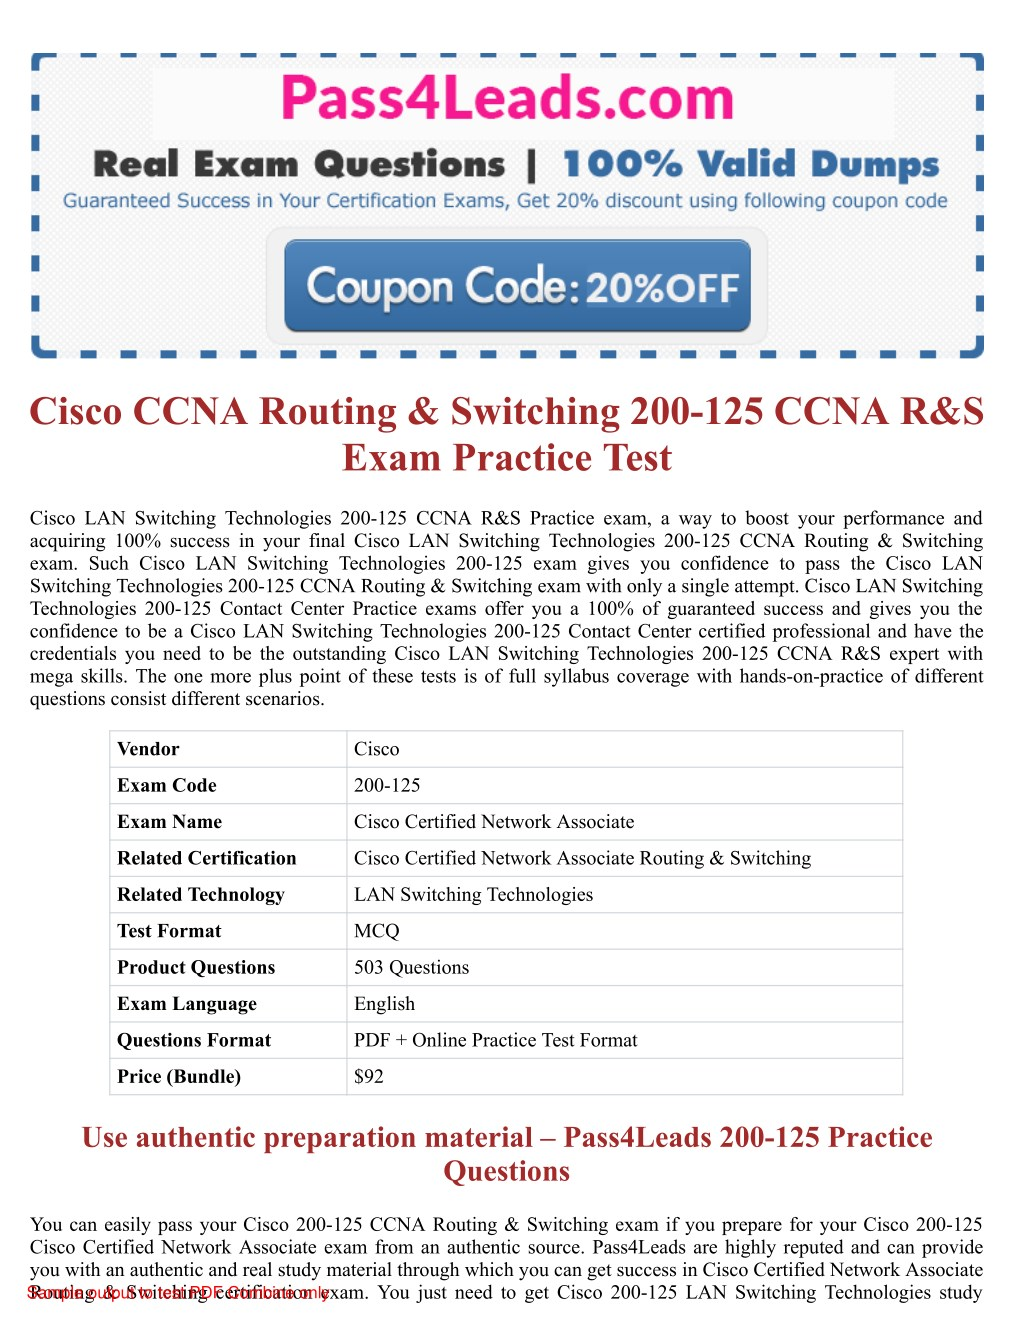 Ppt Cisco 200 125 Ccna Rs Exam Questions Powerpoint Presentation